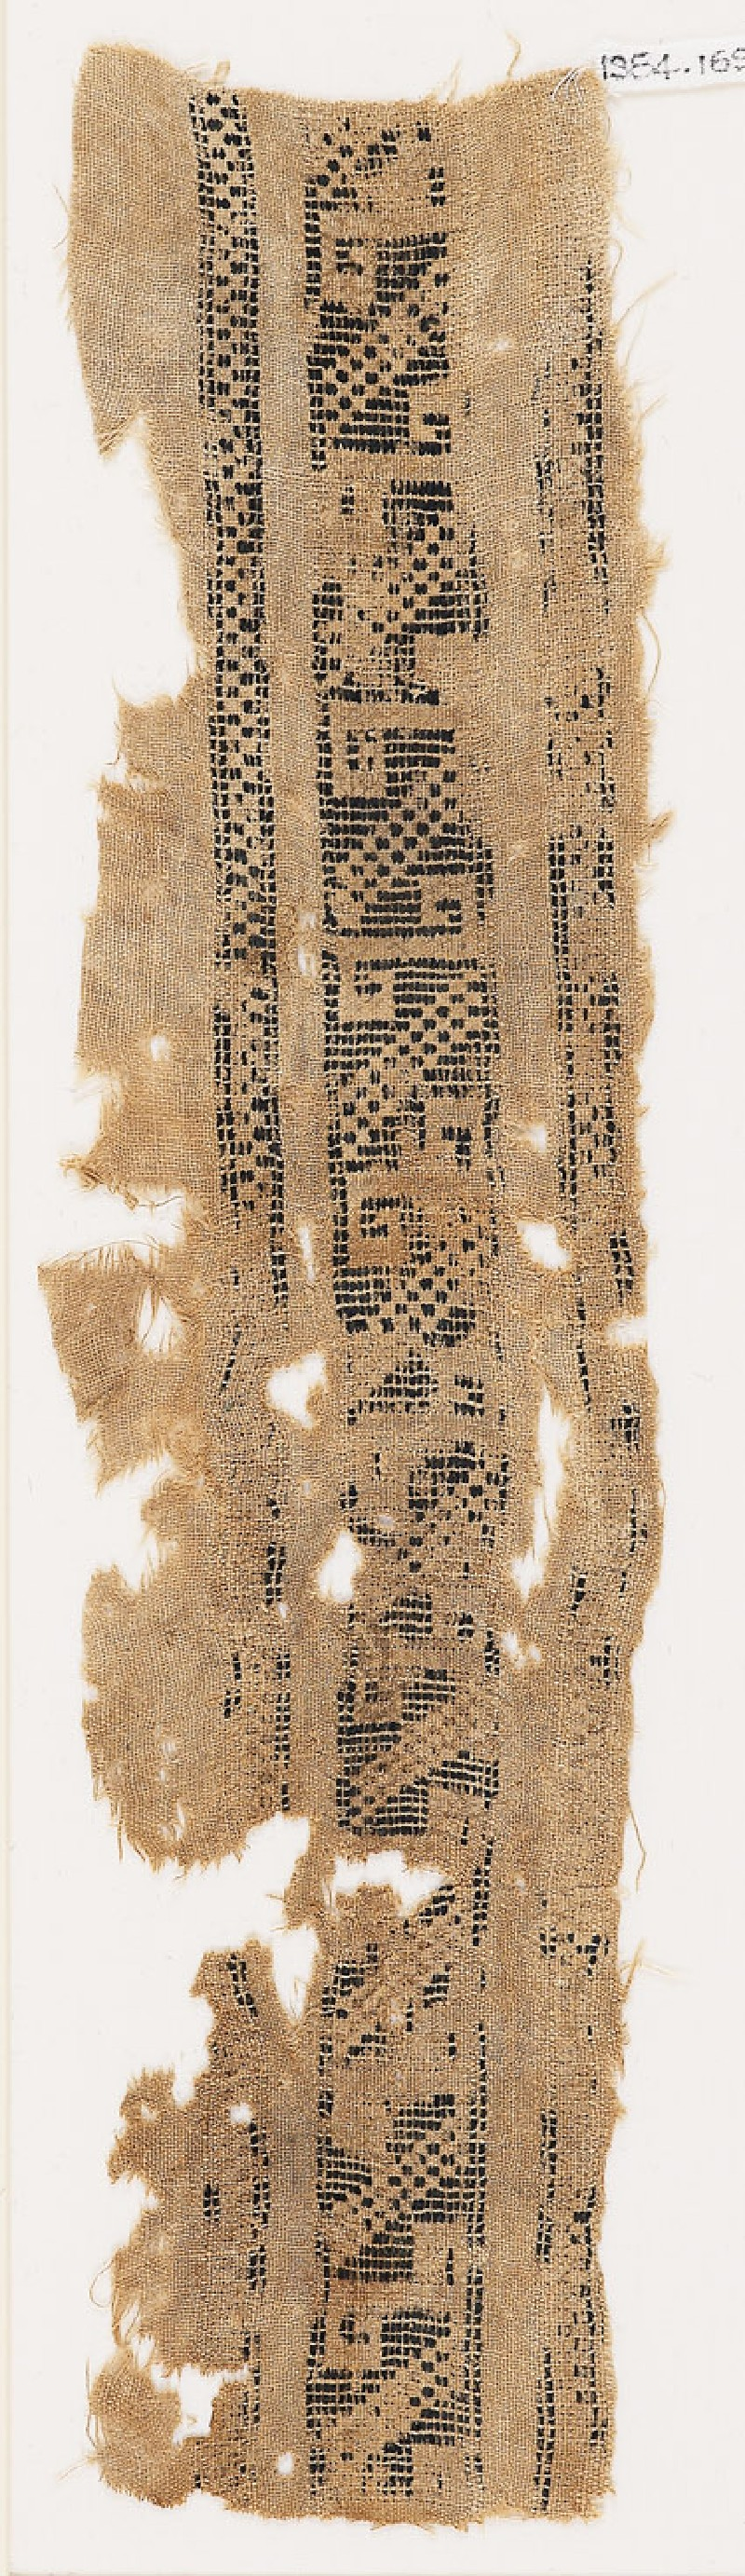 Textile fragment with S-shapes